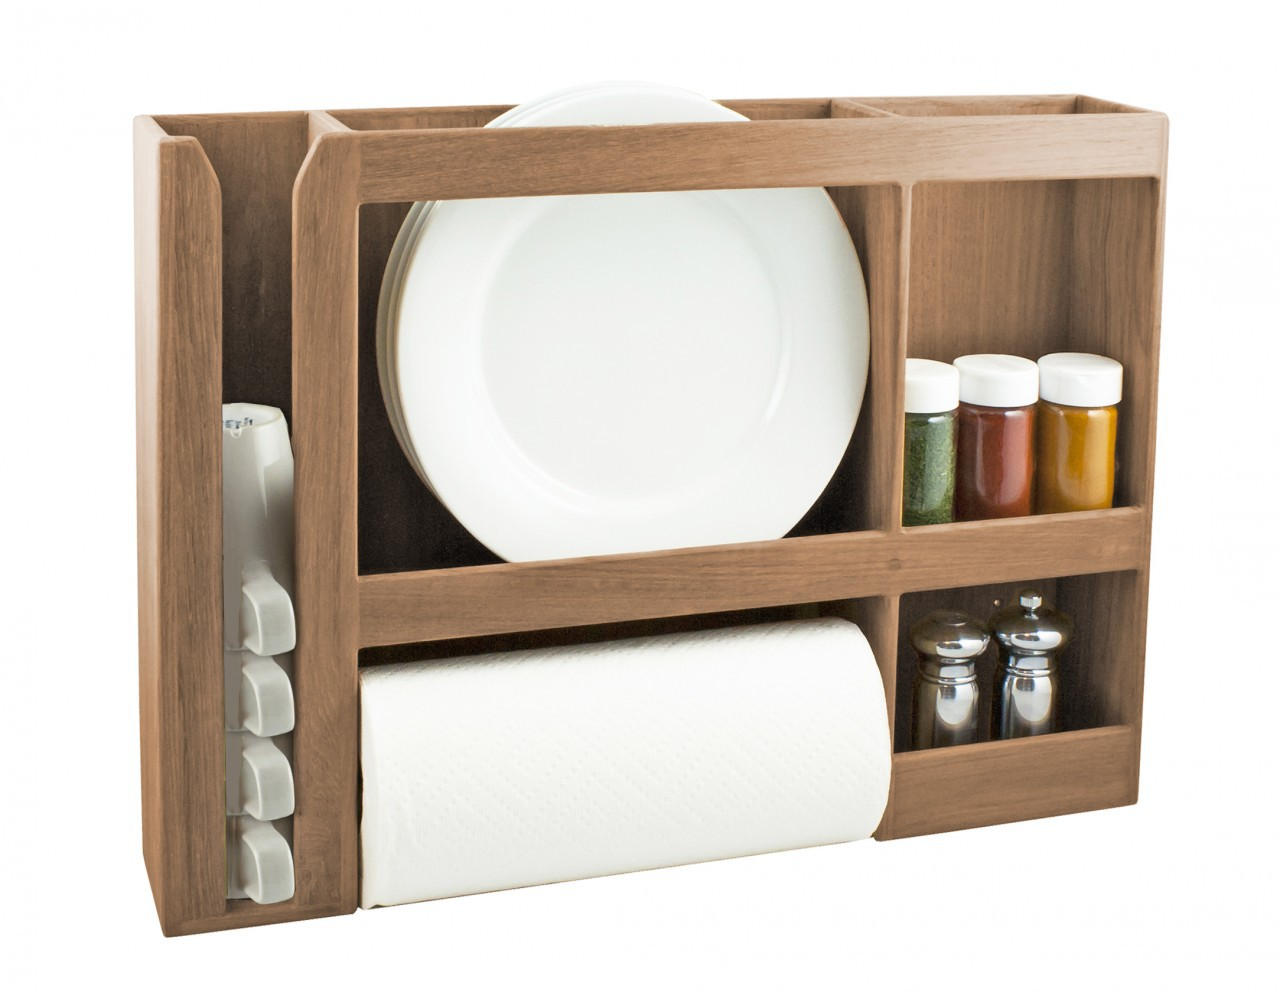 A SeaTeak Dish Cup Spice Towel Rack Is Storing Plates Paper